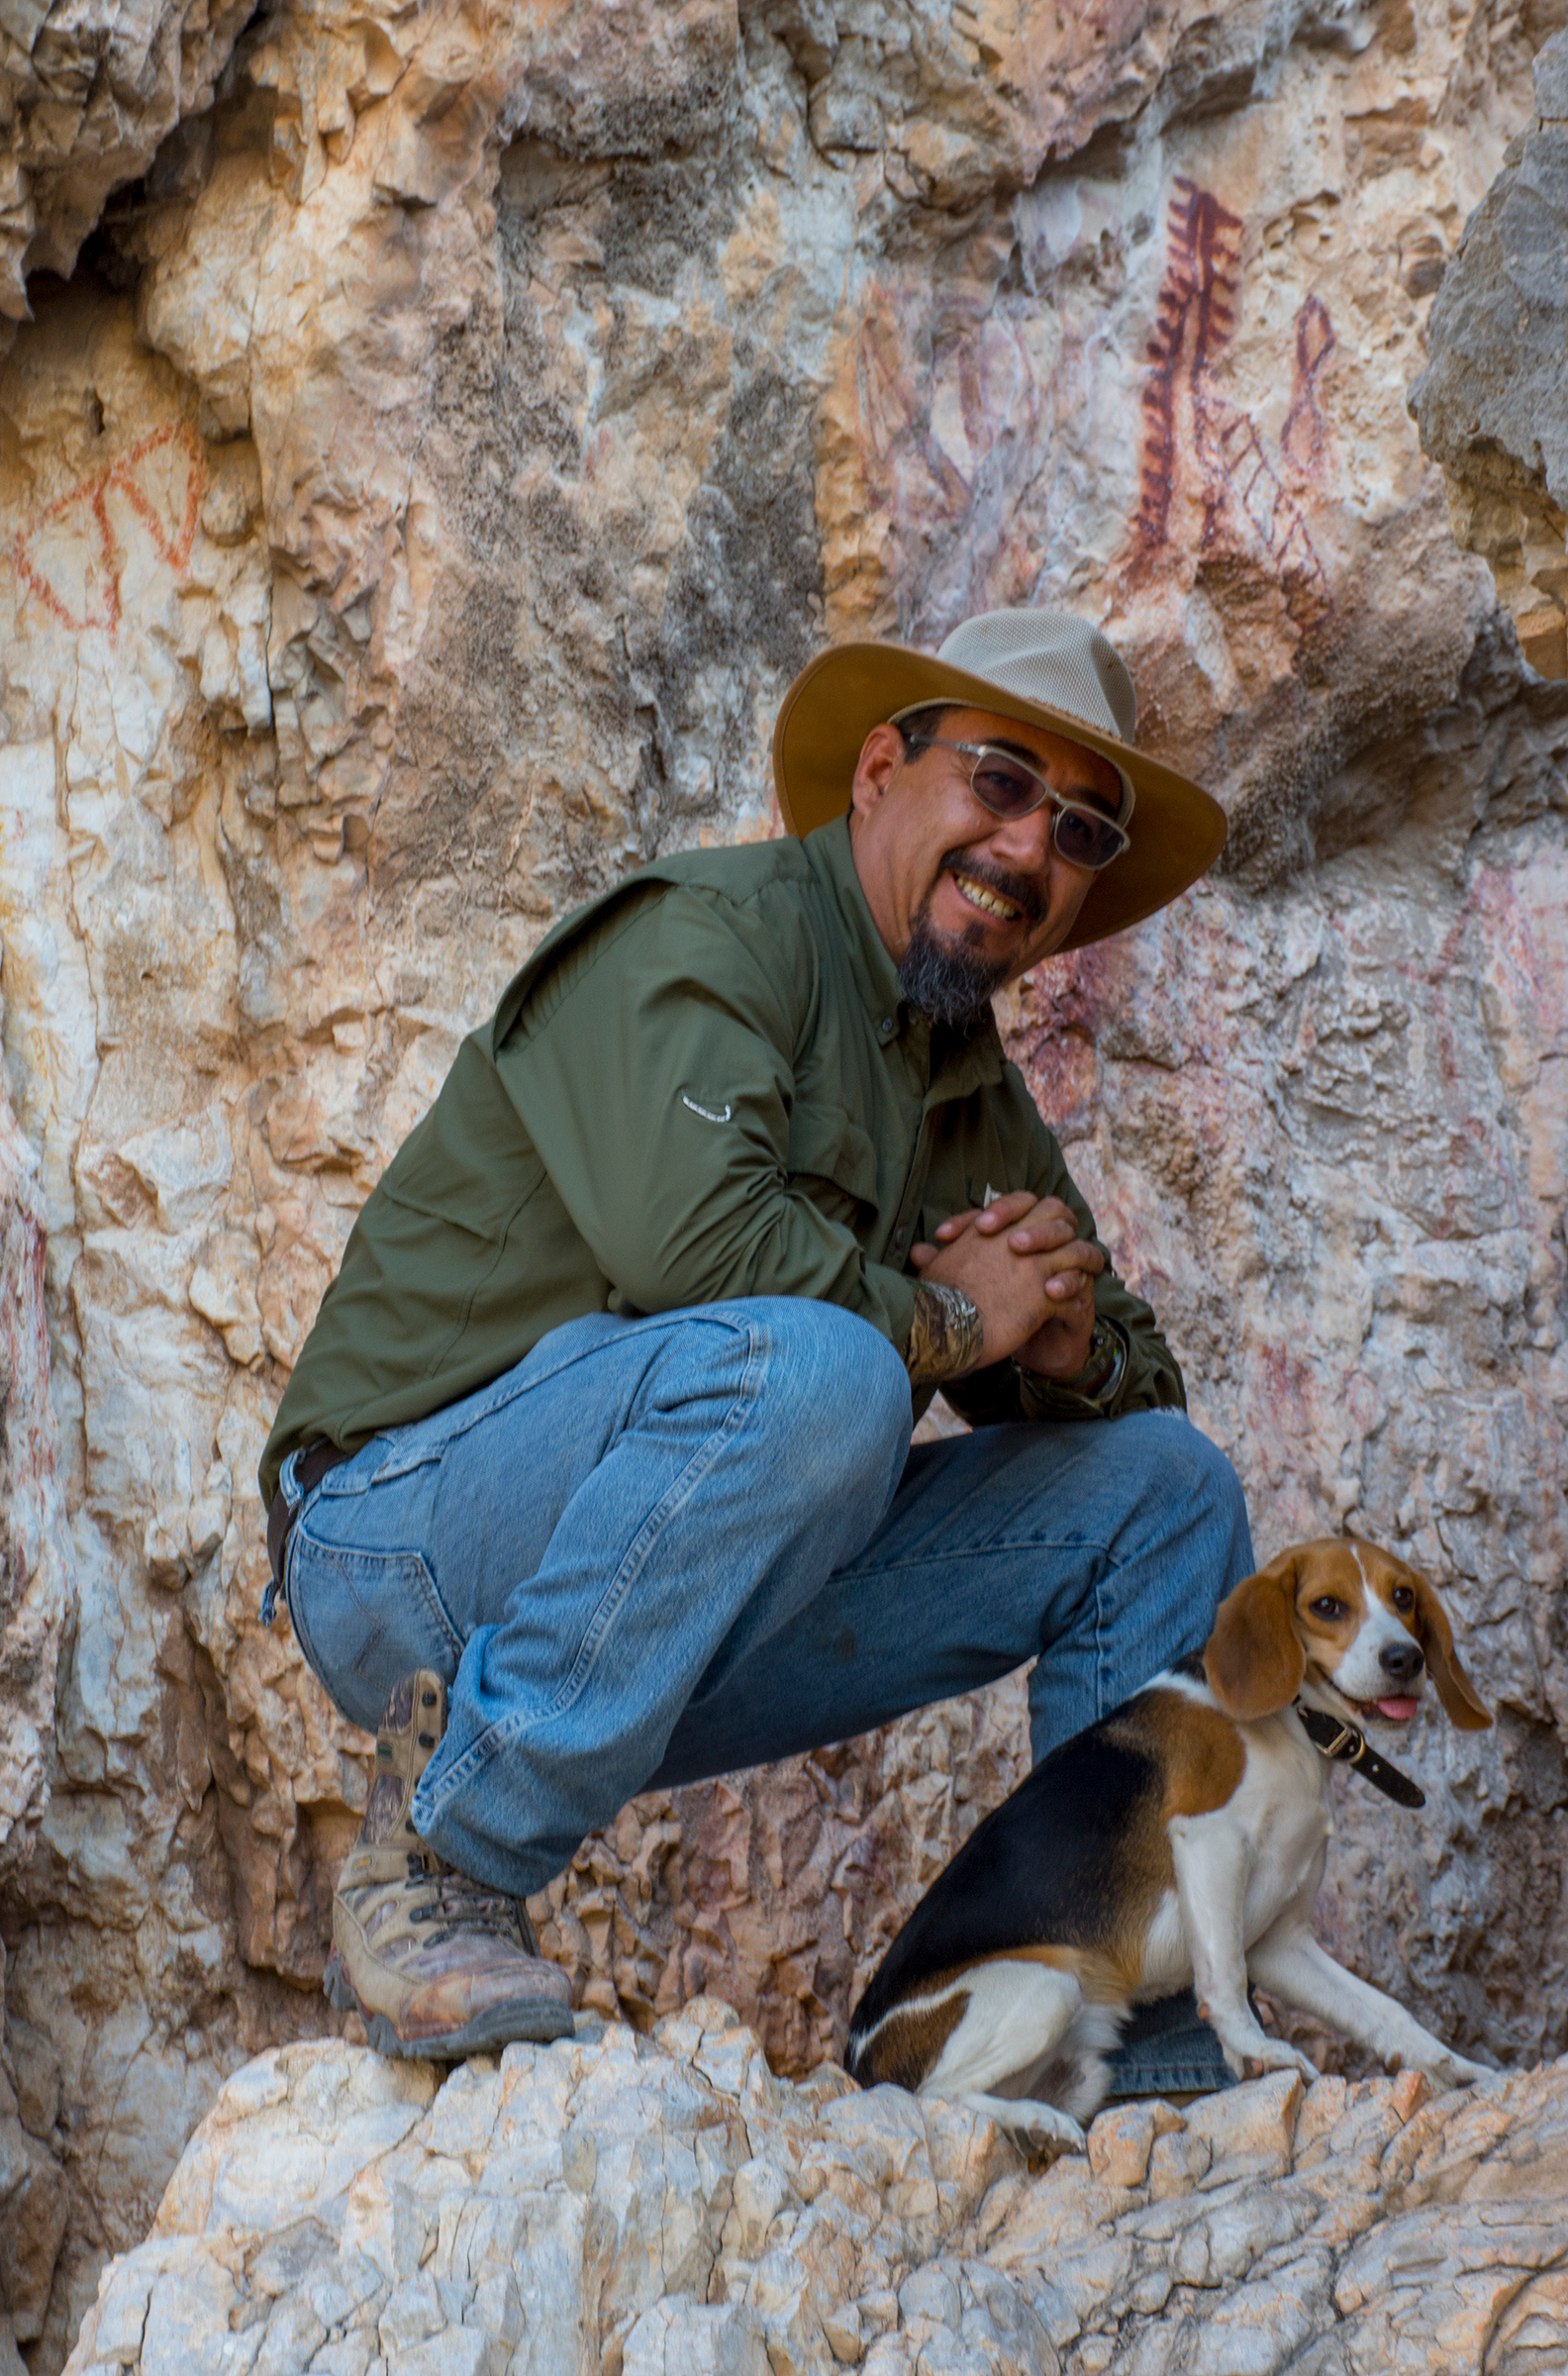 Archaeologist Turi de la Rosa and his dog Darwin pose in front of one of the many archaeological sites in Cuatro Ciénegas—some of which are threatened by environmental degradation.